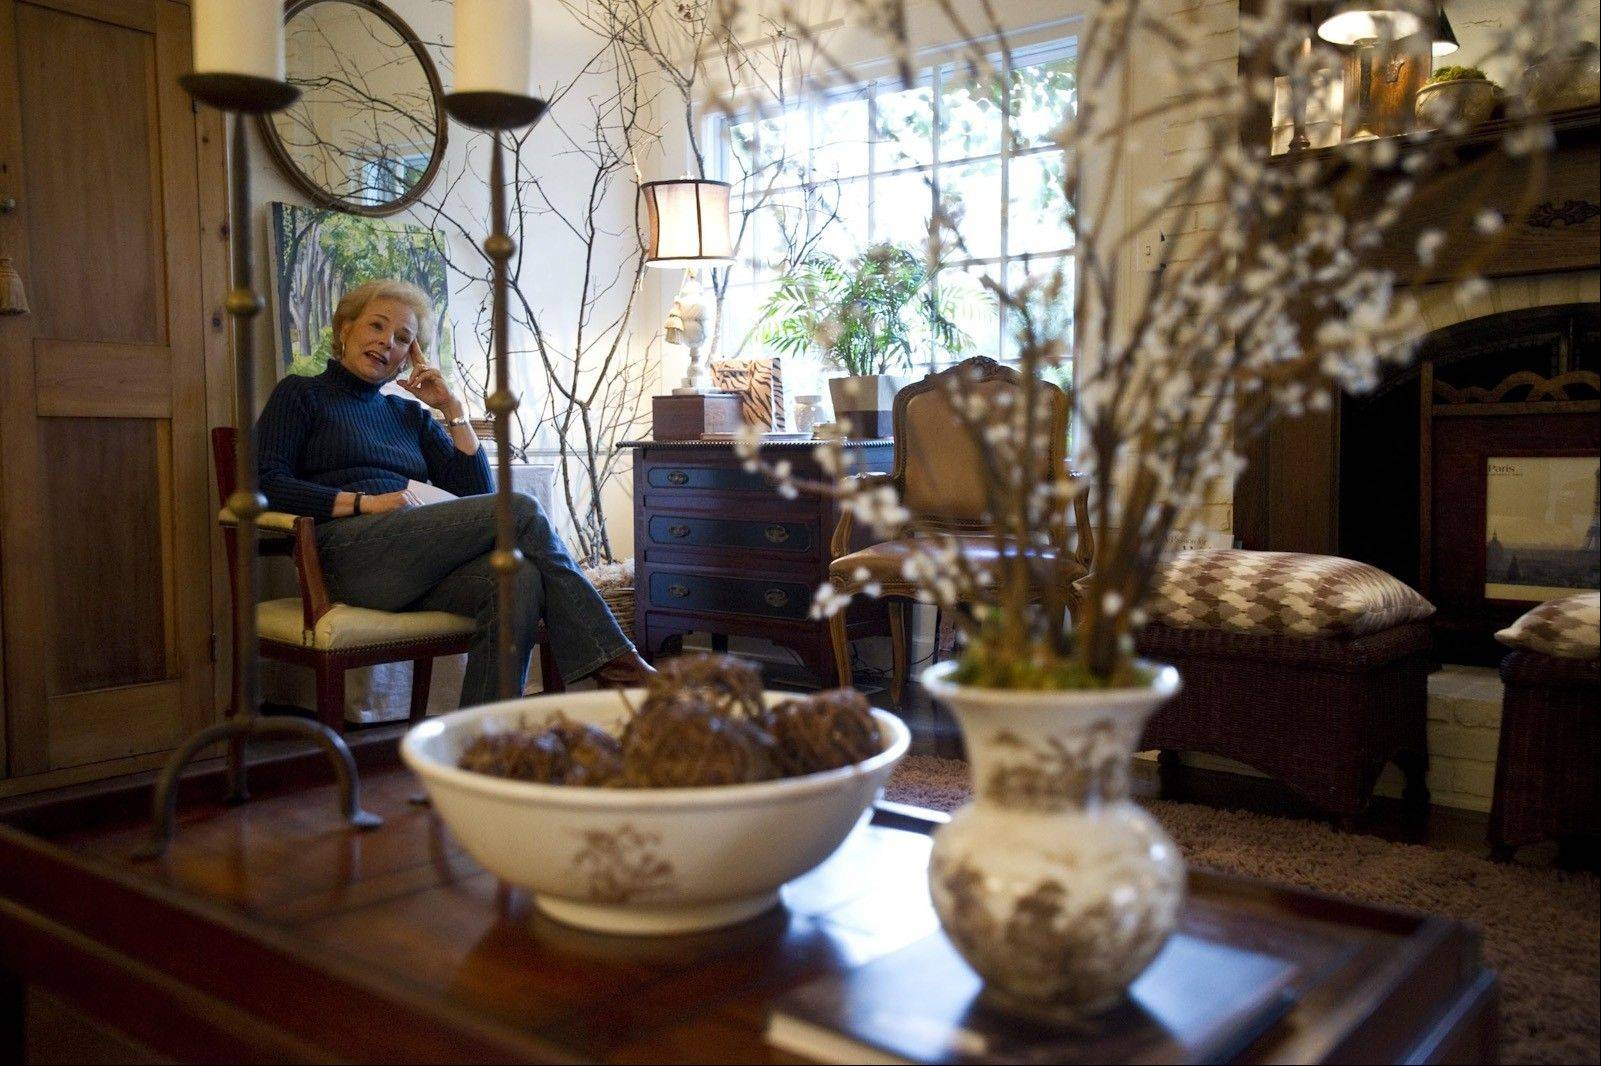 Kaye McWhorter is seen behind a coffee table she purchased for $10 at an estate sale. The McWhorter home is filled with thoughtfully re-purposed found items and thrift store bargains.